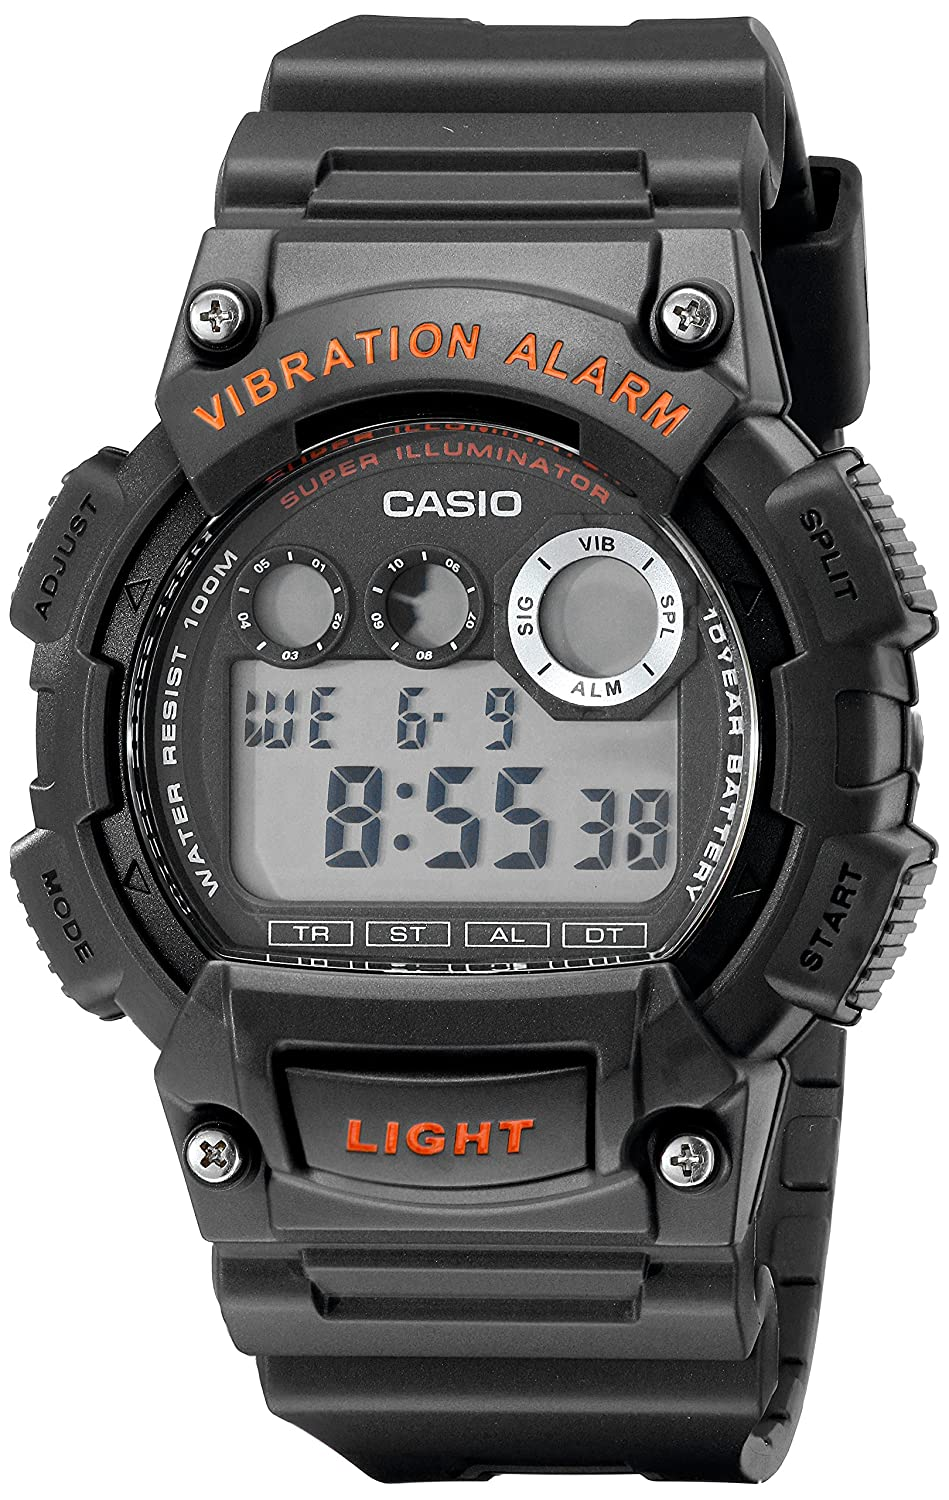 Image result for casio w735h